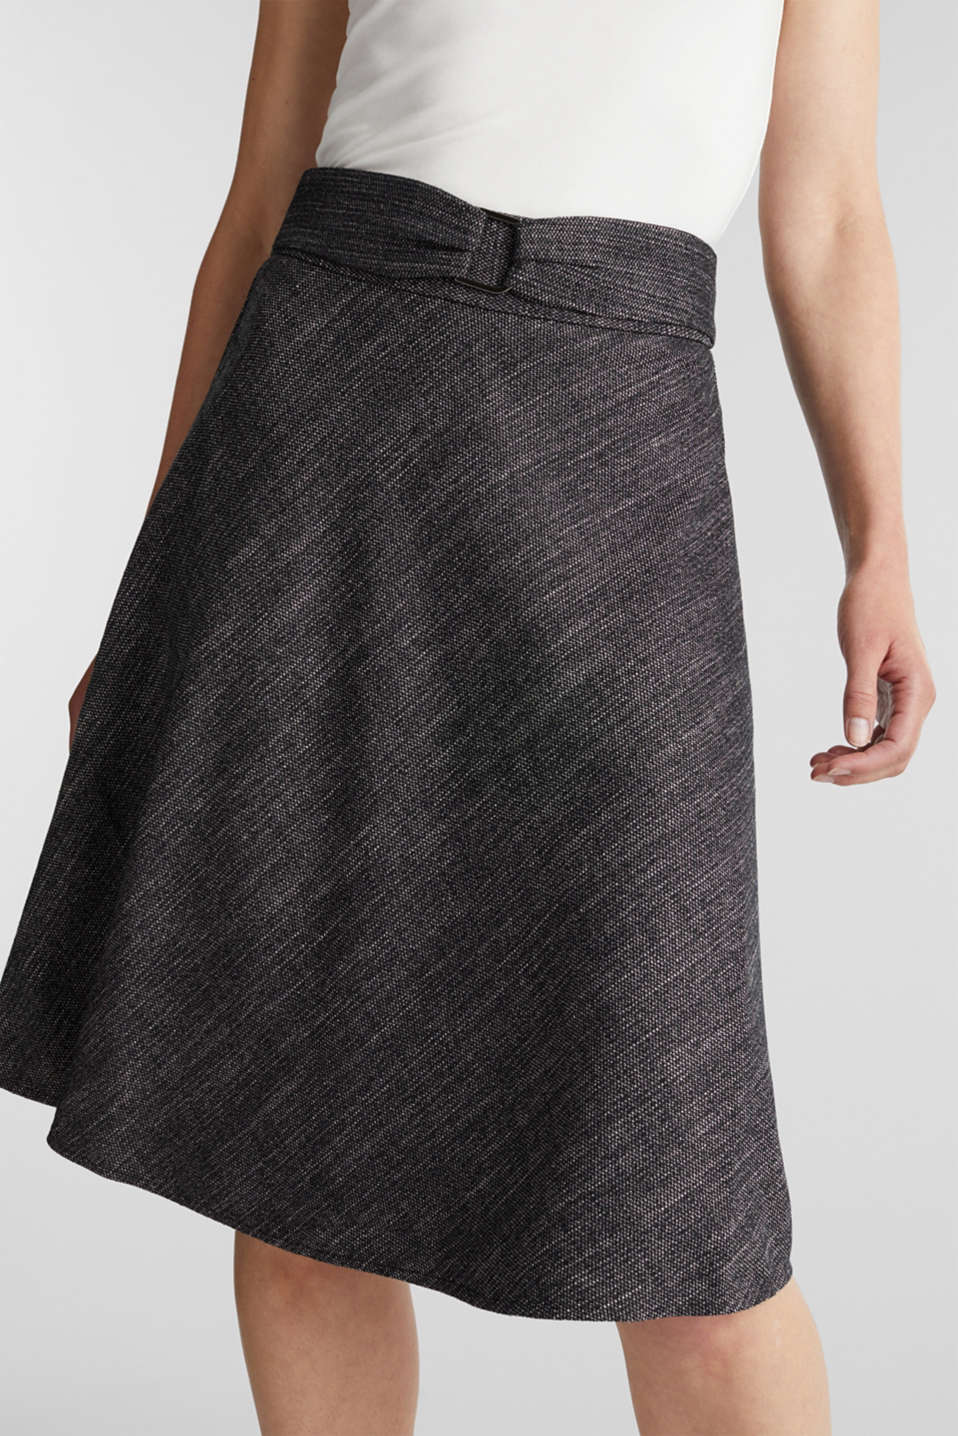 A-line skirt in a salt and pepper look, BLACK 2, detail image number 0